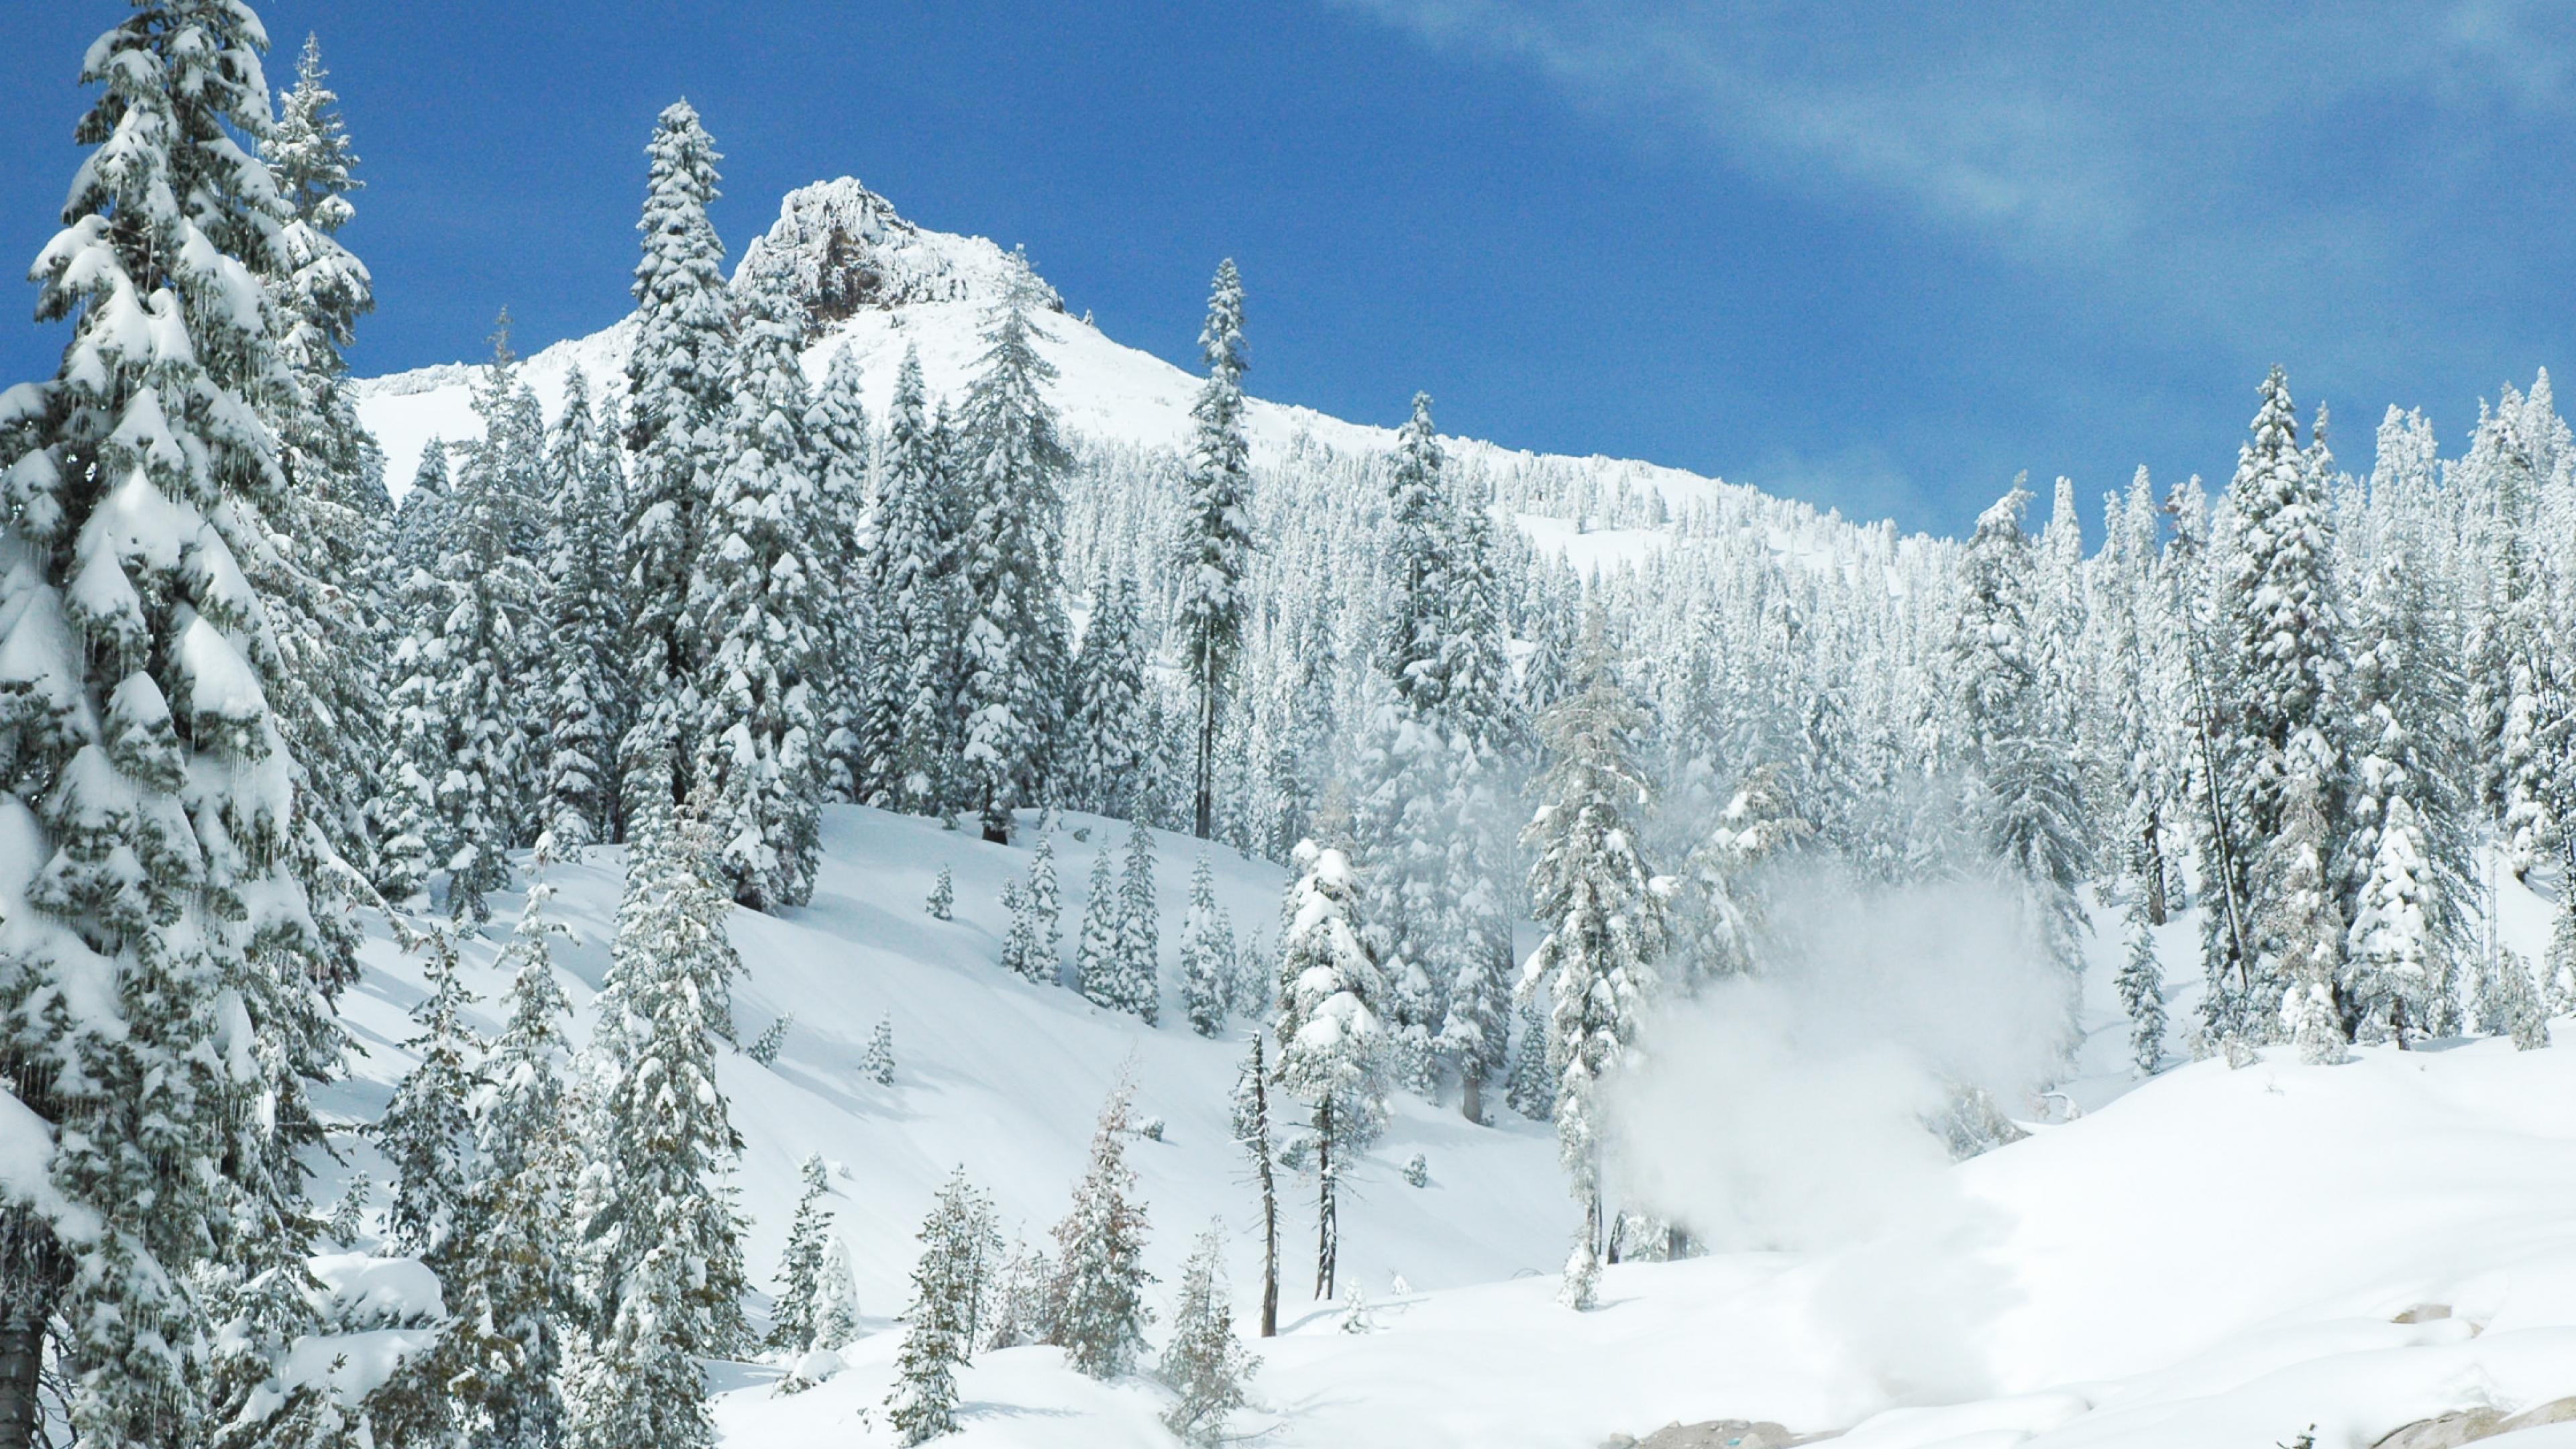 Snow-covered trees and mountain of Lassen Volcanic National Park